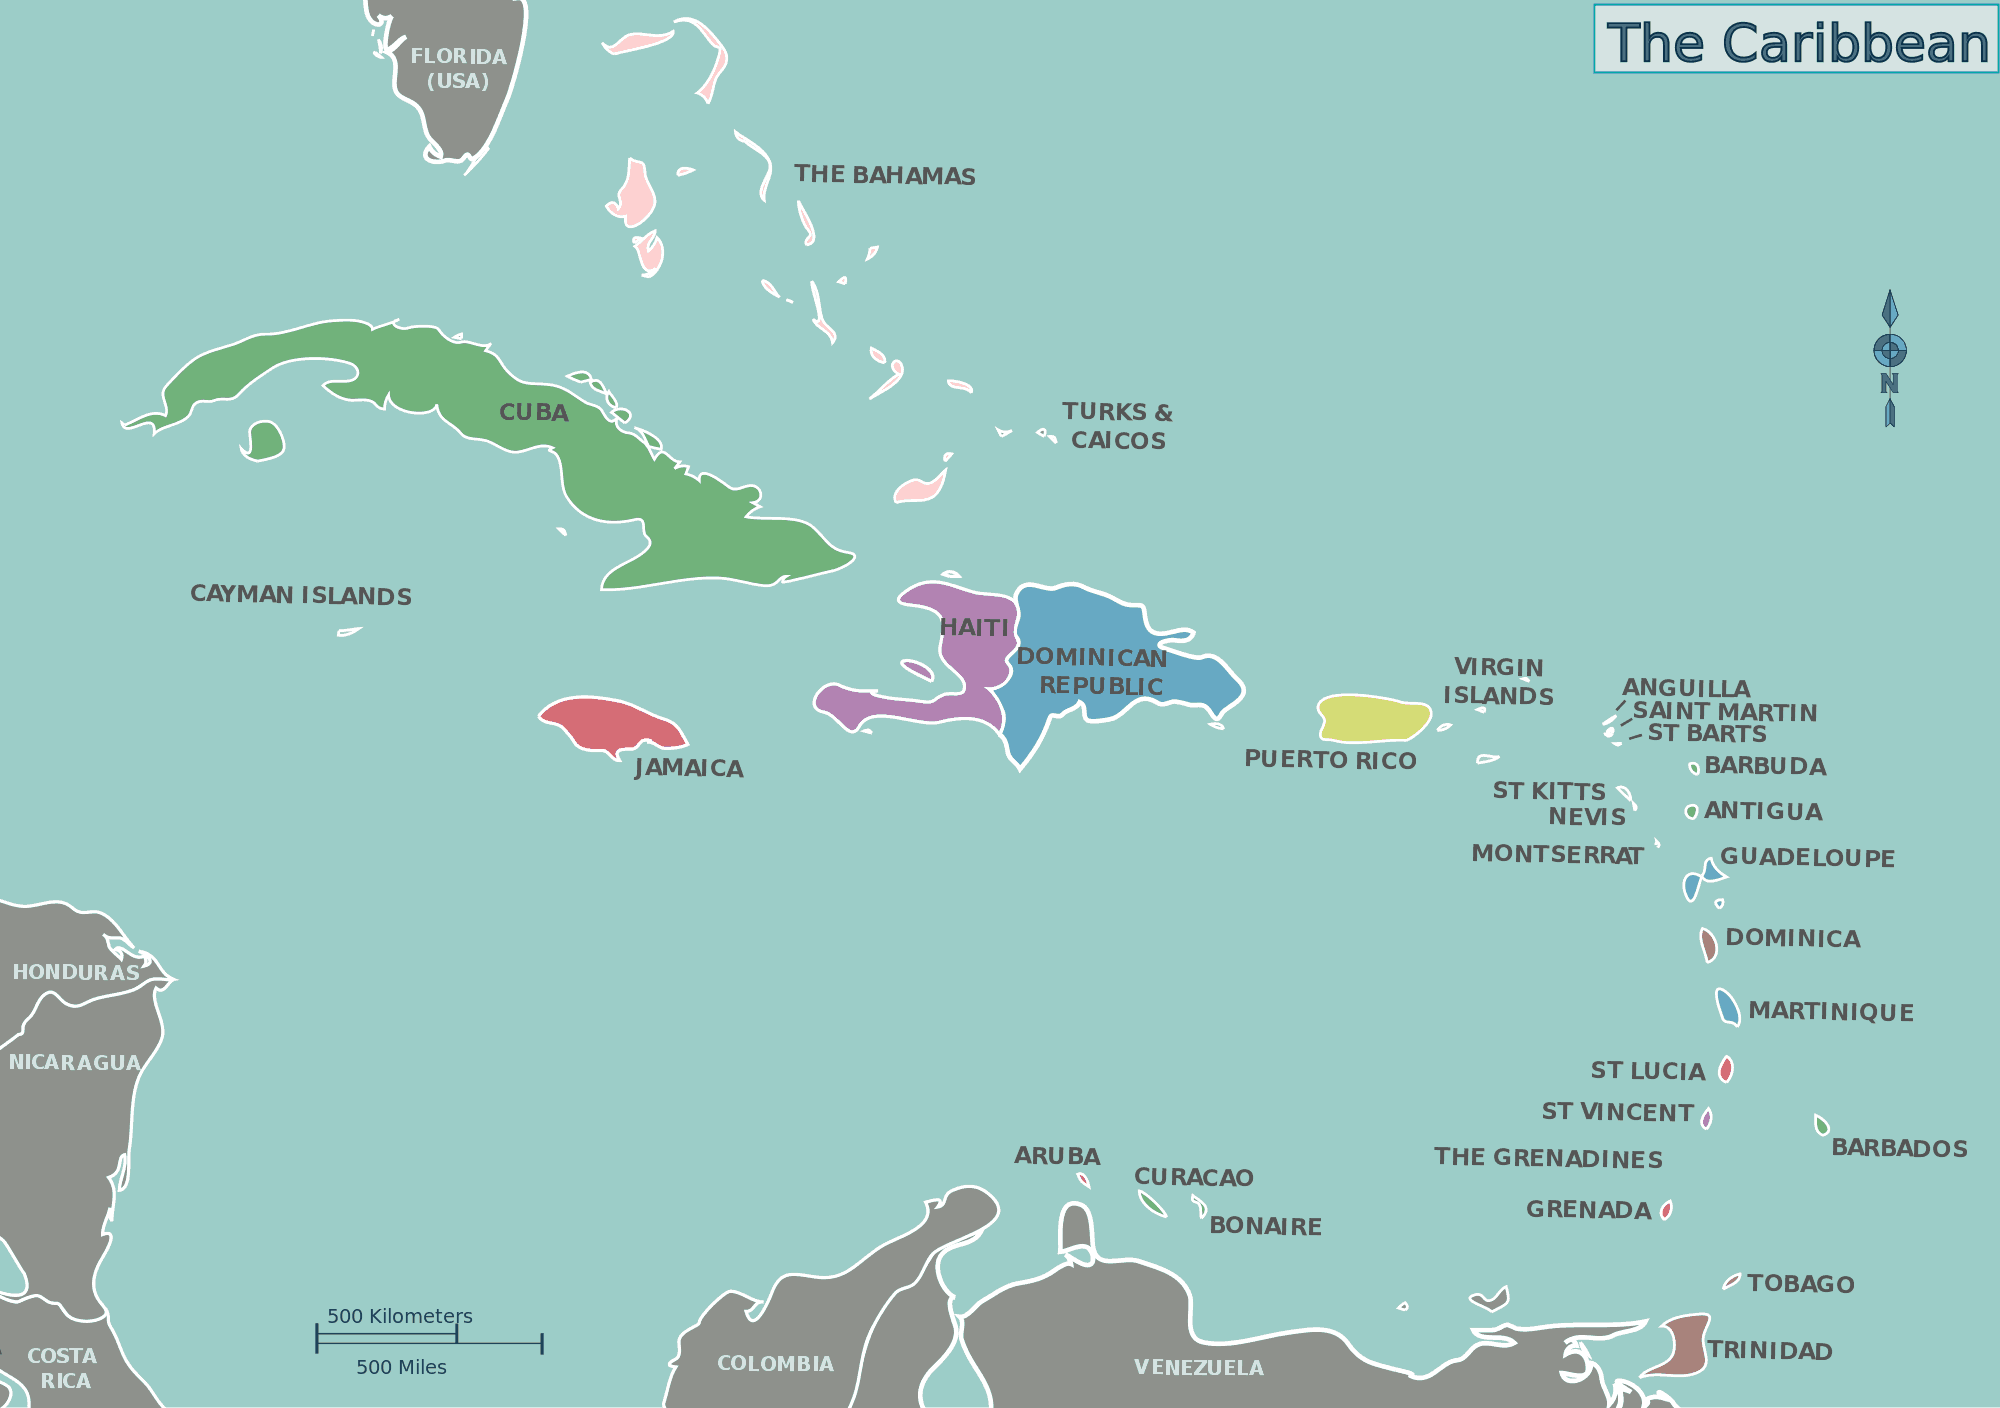 How many Caribbean islands can you place Key Caribe